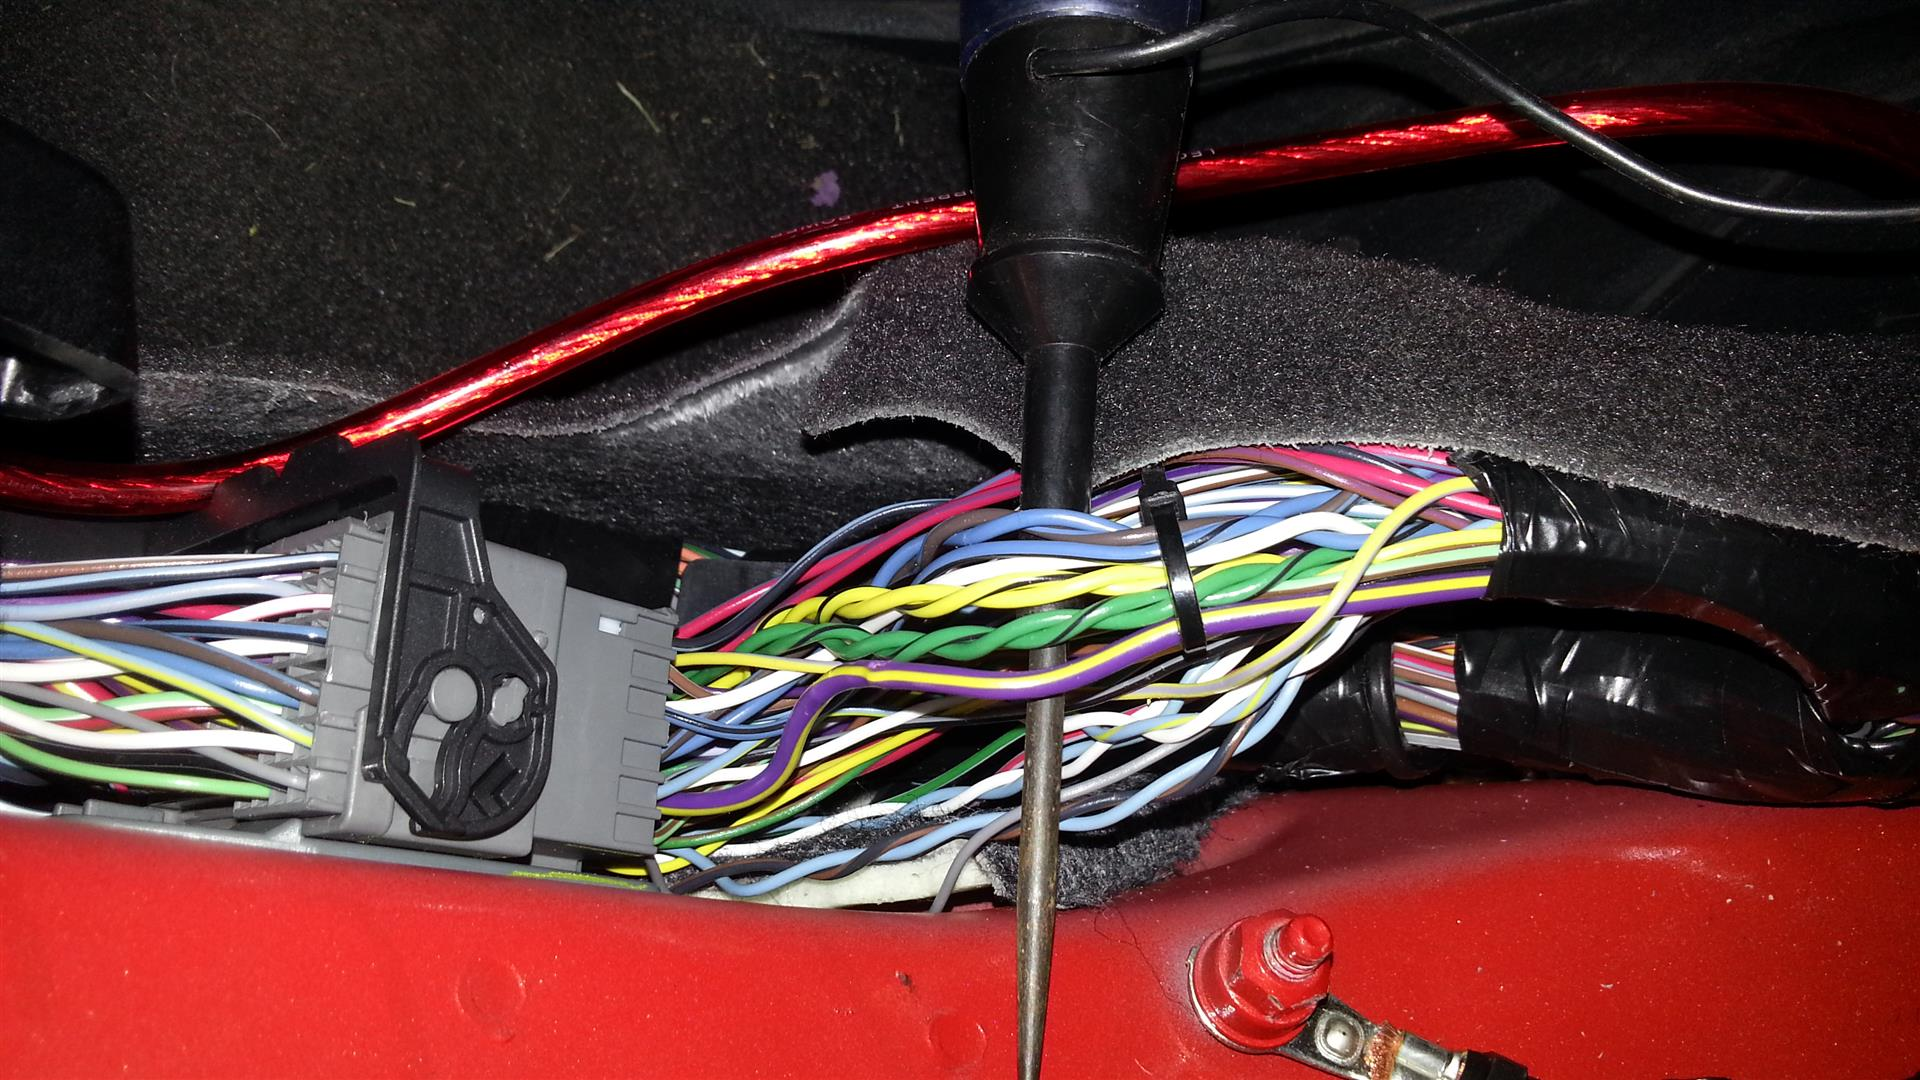 2013 Chevy Sonic Stereo Wiring Diagram Manual E Books Electronics Speaker Wire Color Codes Owners Forum2013 2